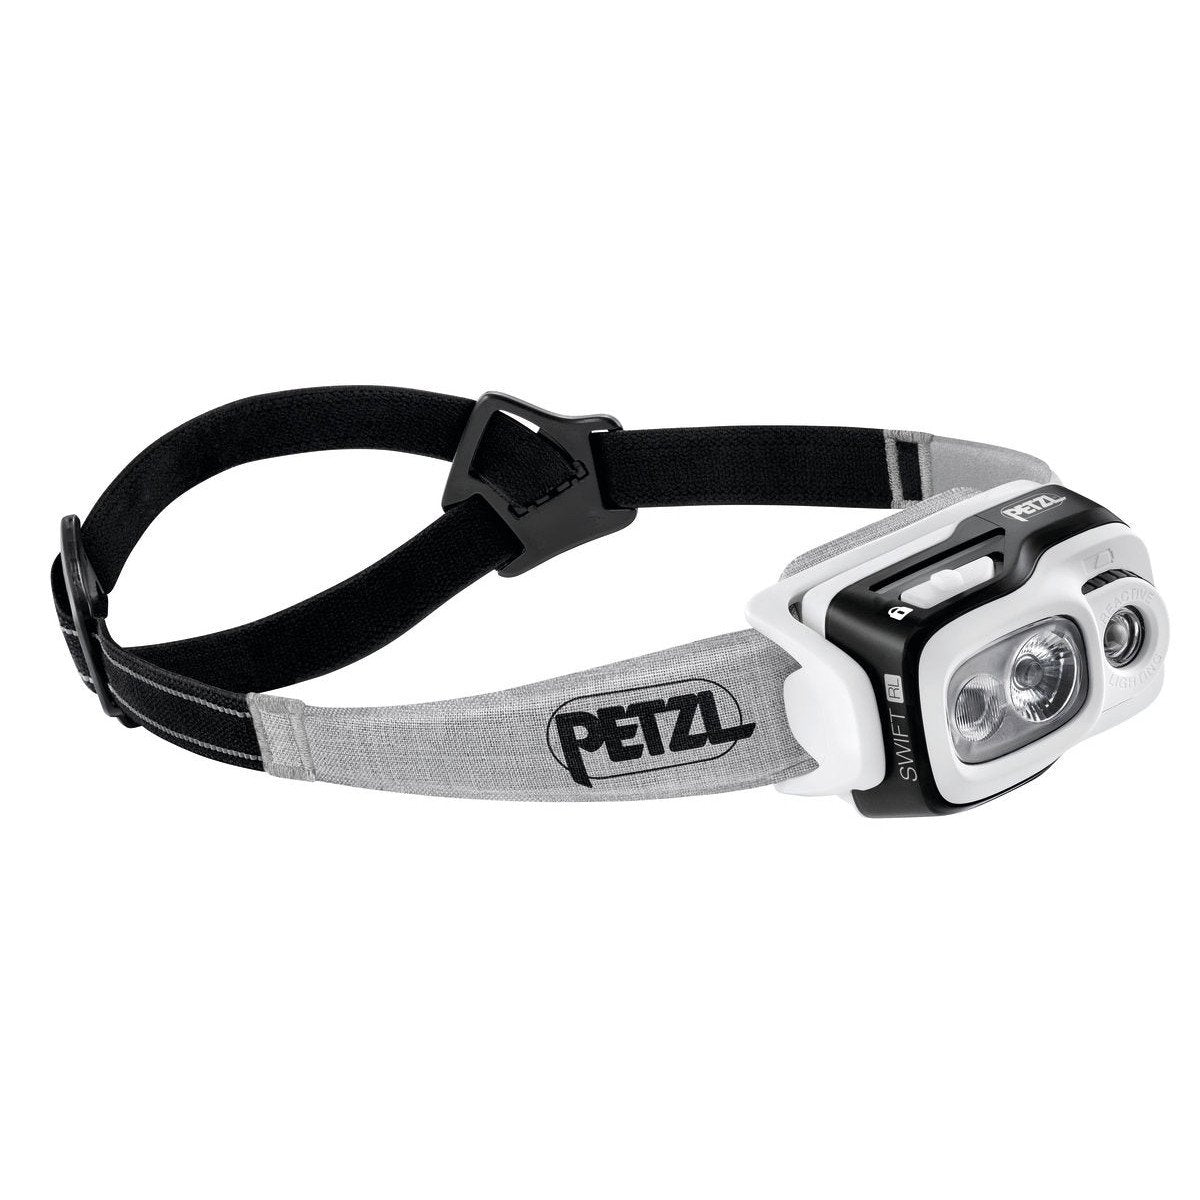 Petzl Swift RL Headtorch, front/side view in black with black and grey strap